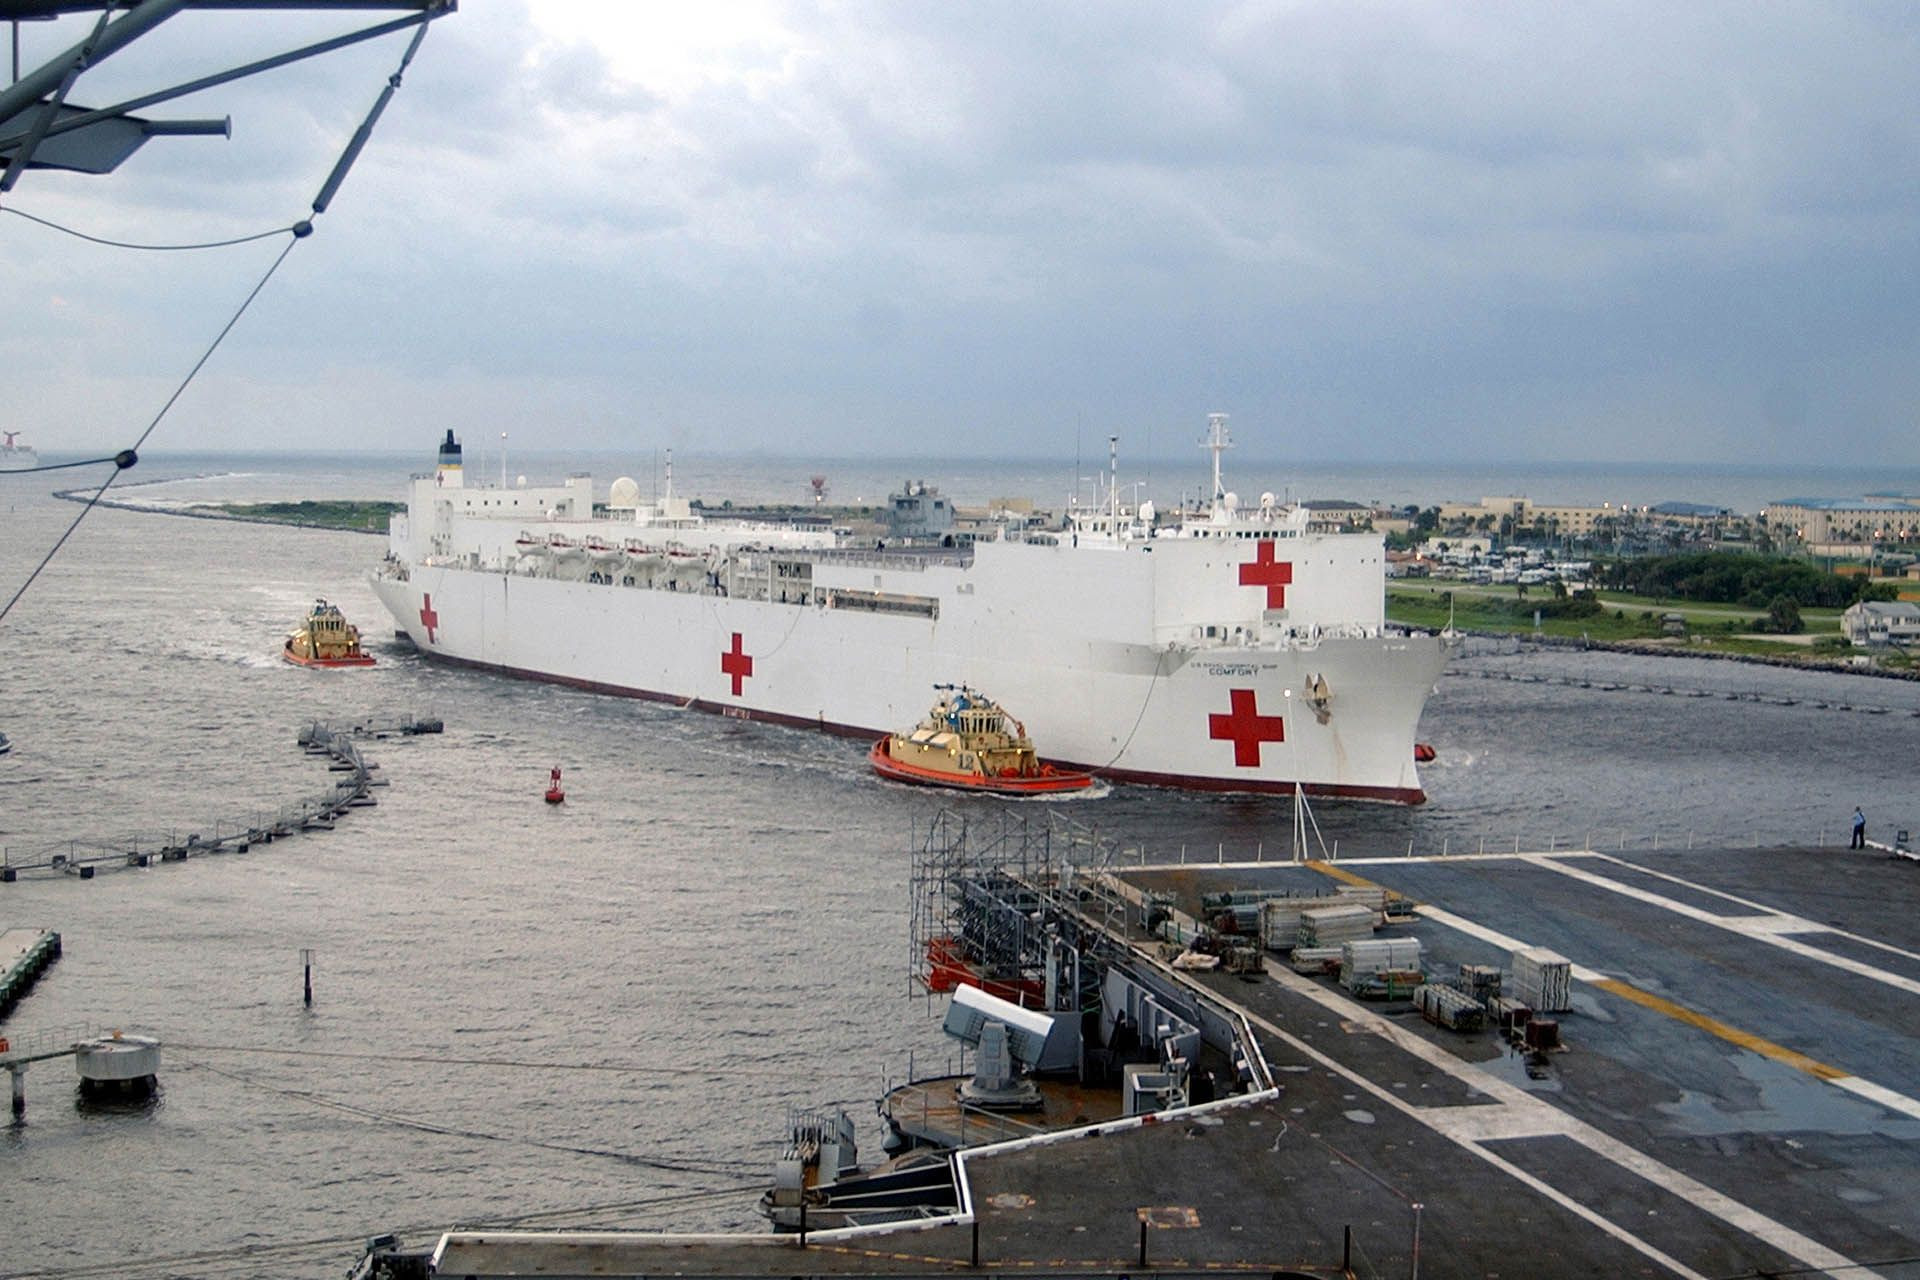 Meet The Usns Comfort Navy Hospital Ship That Has Treated Thousands Around The World United States Navy Ships Around The Worlds World